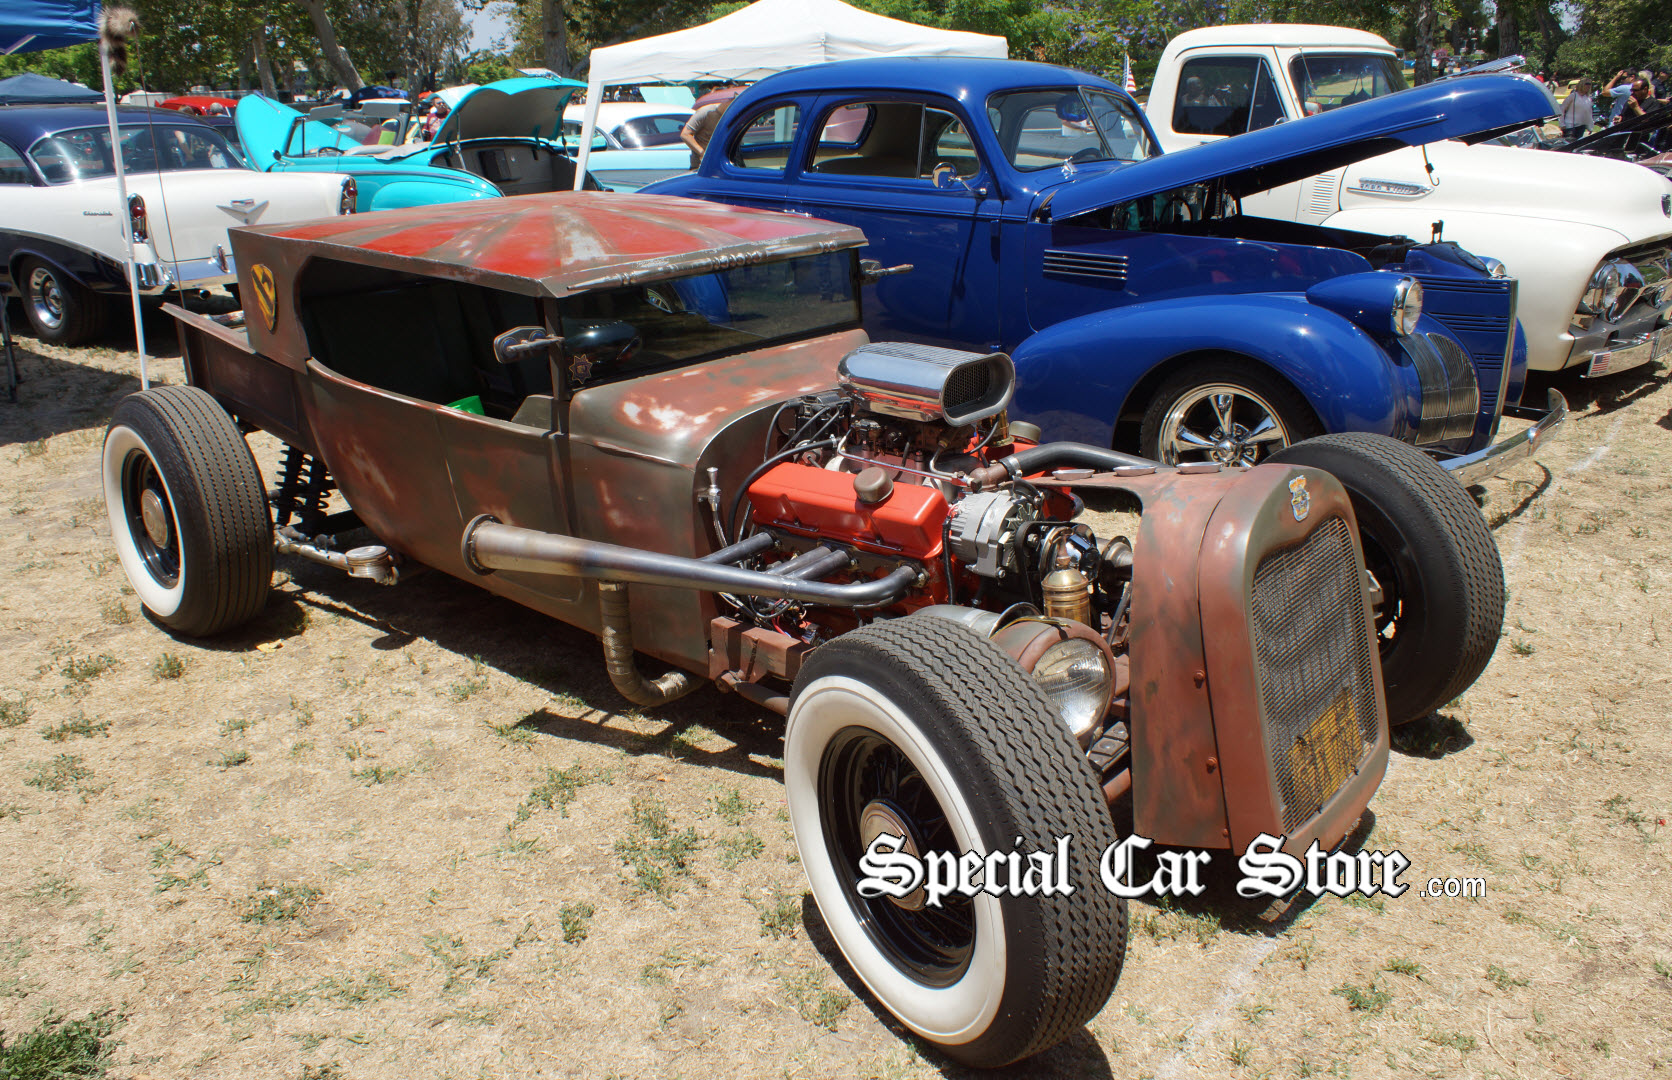 HOT ROD Homecoming Car Show | Special Car Store